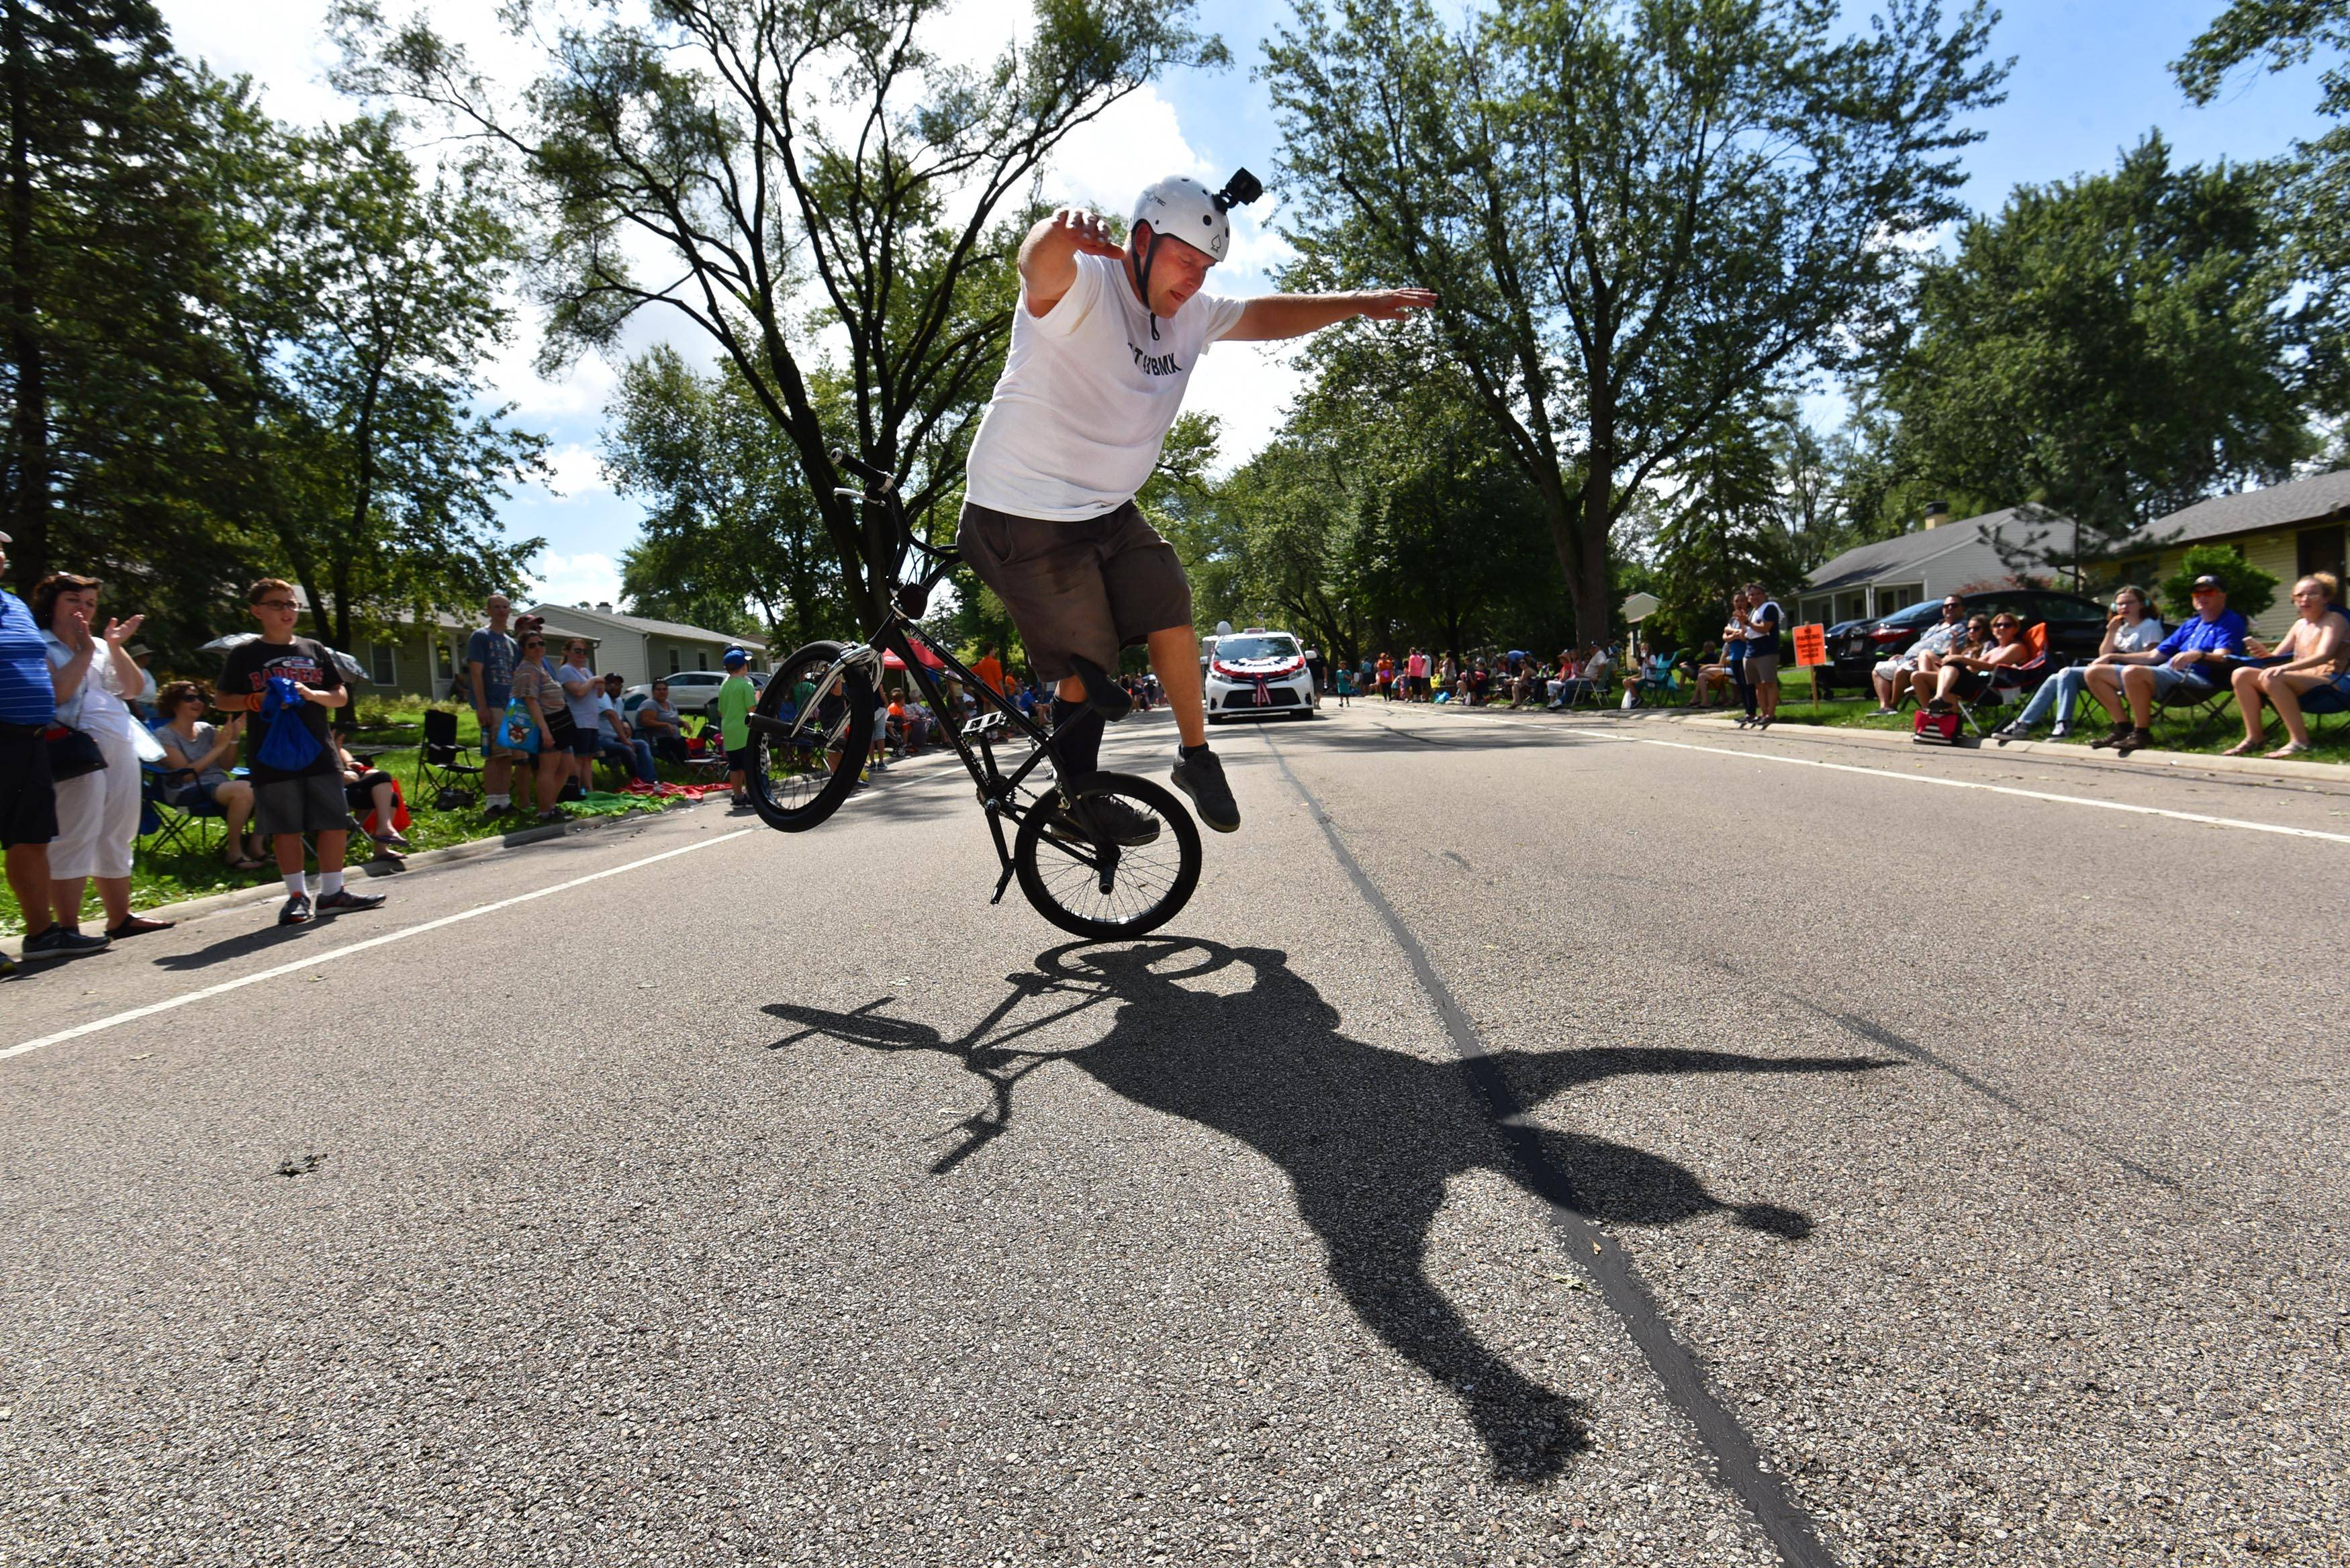 Many reasons, ways to celebrate at Buffalo Grove Days parade